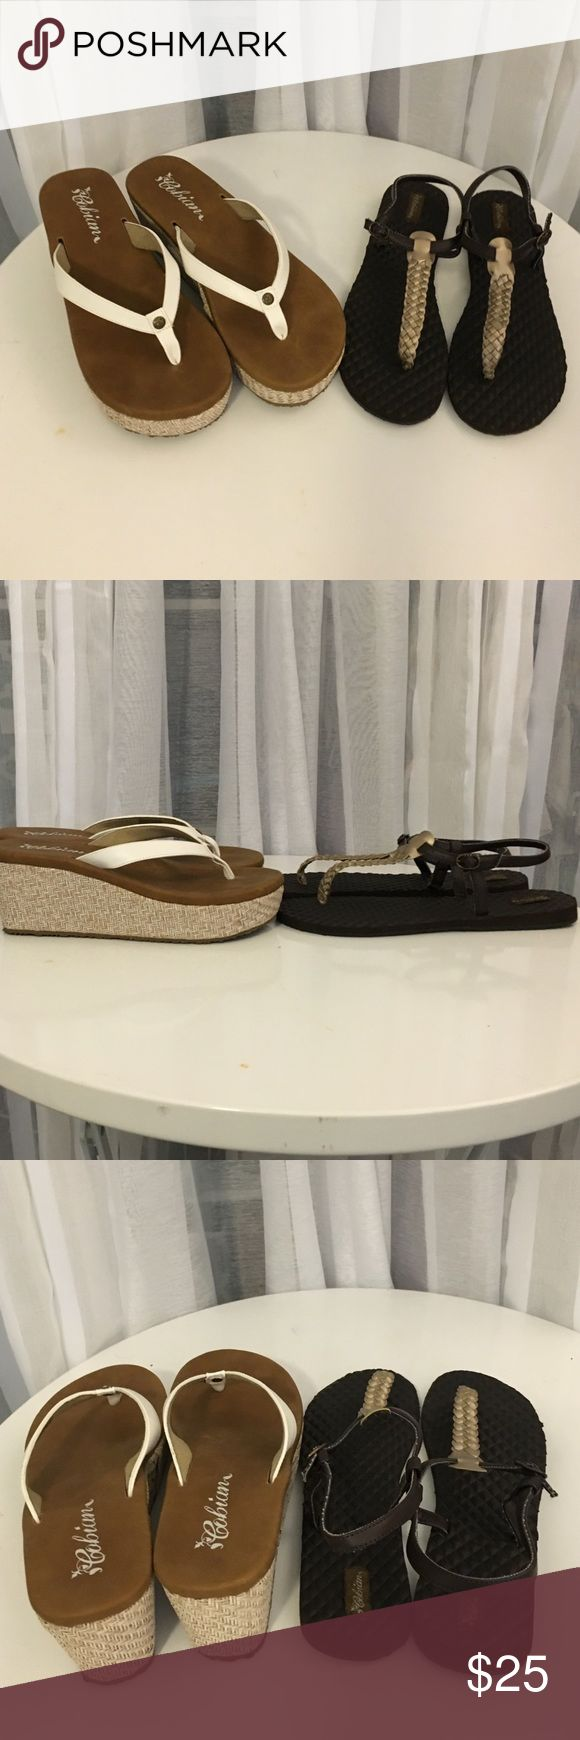 2pairs of Cobian lightweight sandals NWOT Both size 9. Rattan wedge with white straps & brown flats with woven gold straps. Both easy to wear & easy on your feet! Cobian Shoes Sandals